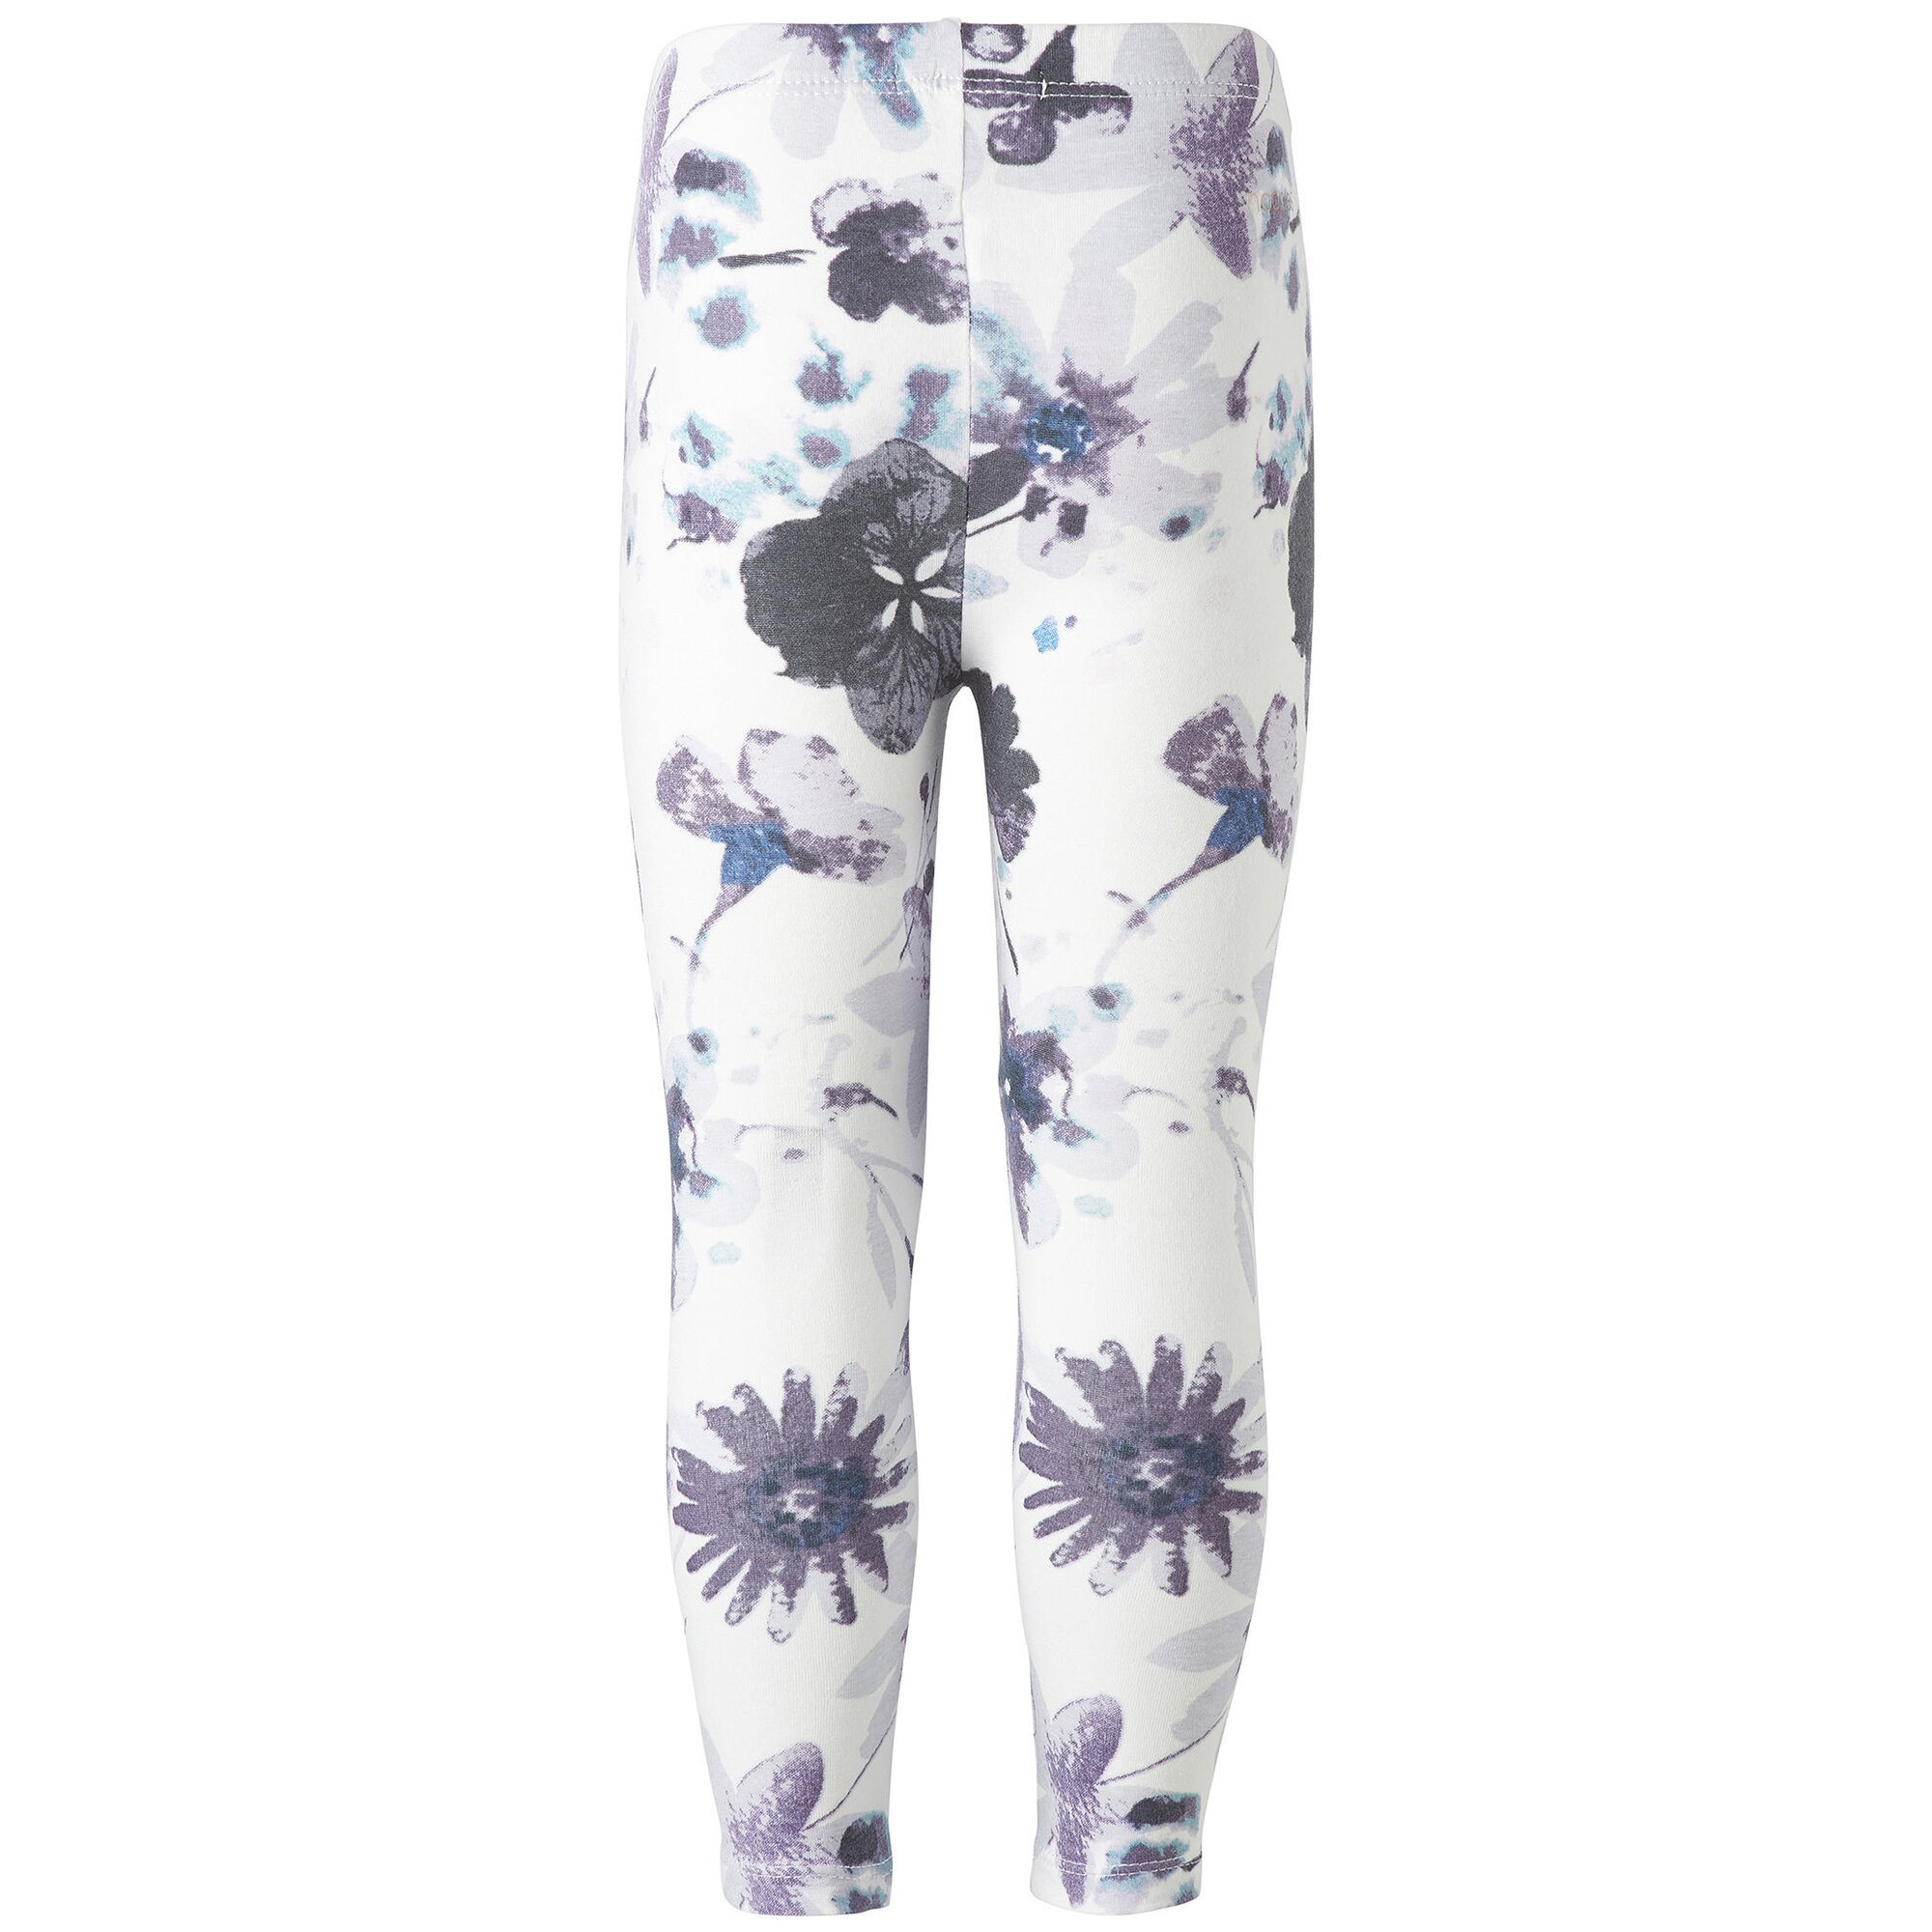 noppies-leggings-linsburg, 16.99 EUR @ babywalz-de